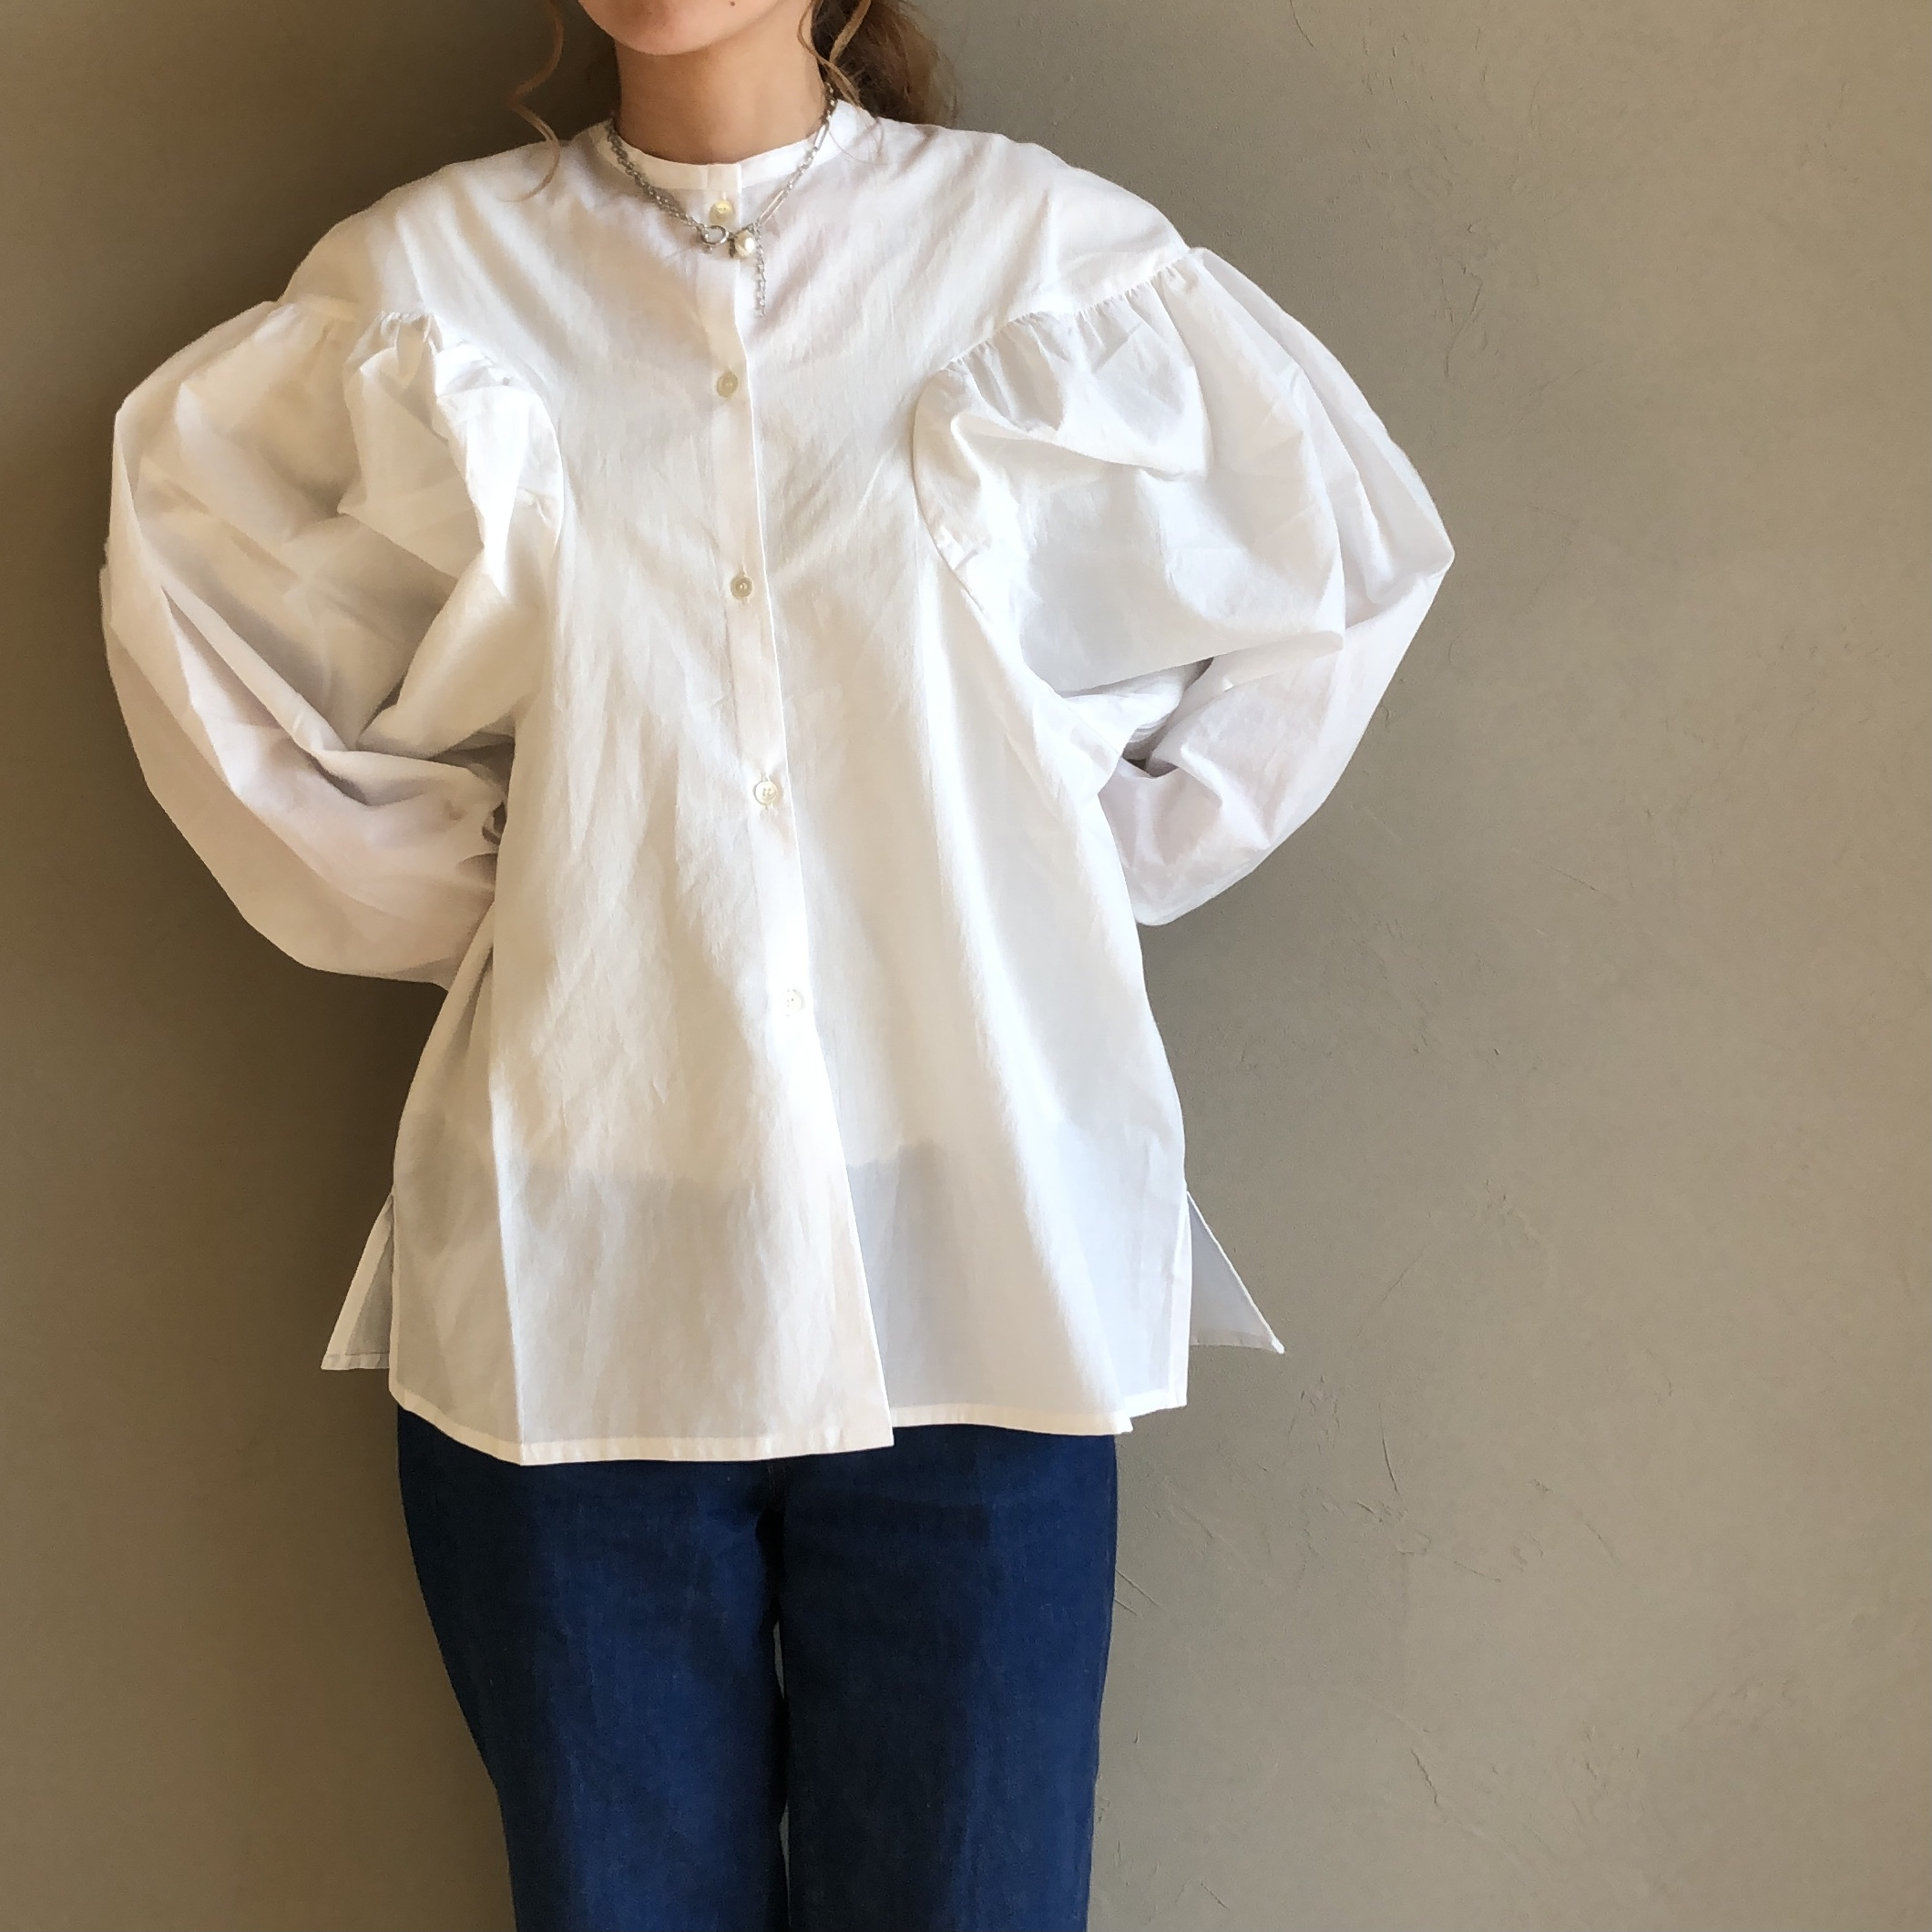 【 NAUS 】- 0034-B - Volume sleeve blouse